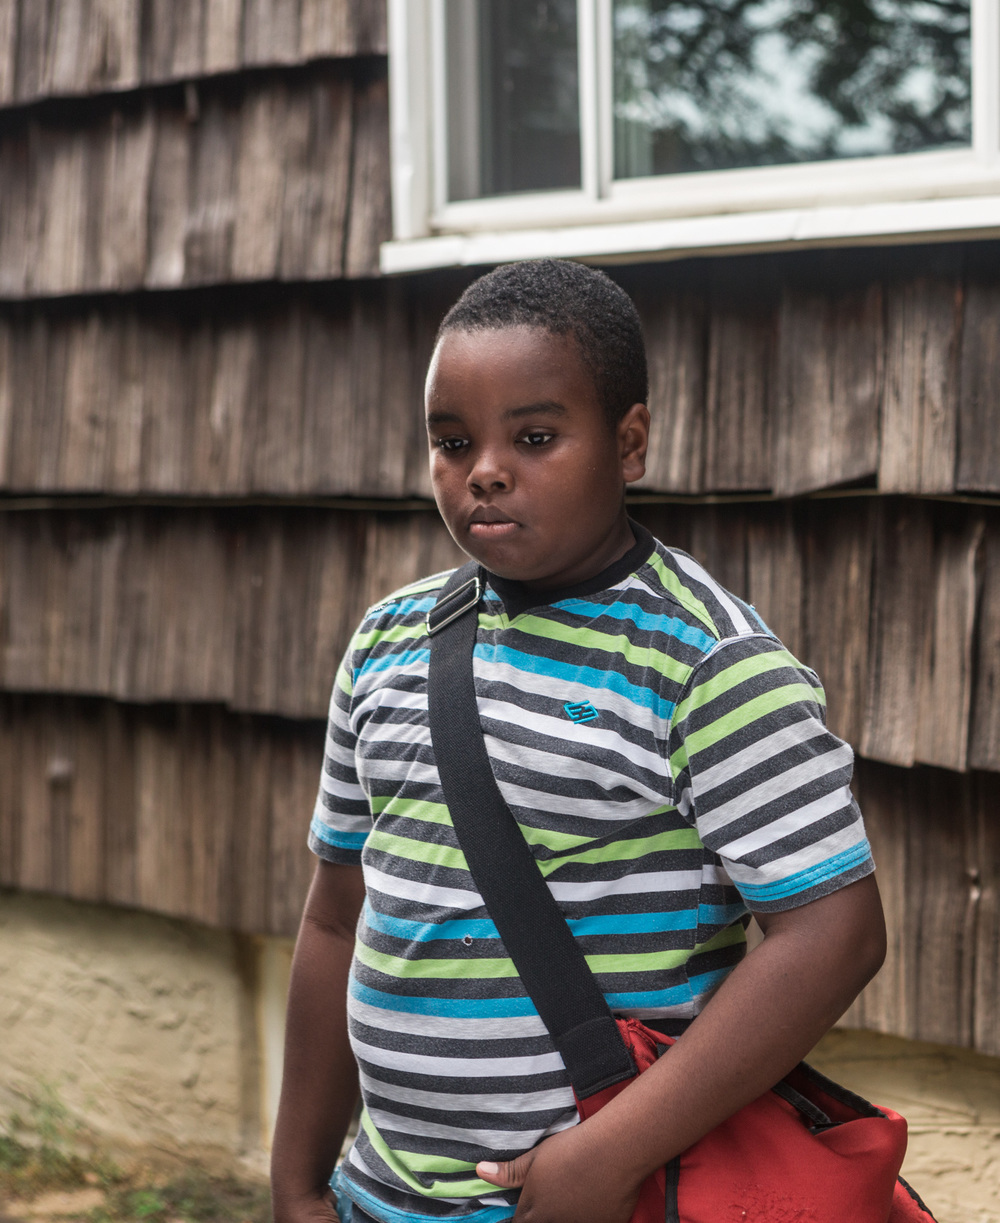 Maximus Britton plays the indefatigable Jamal, who is searching for answers